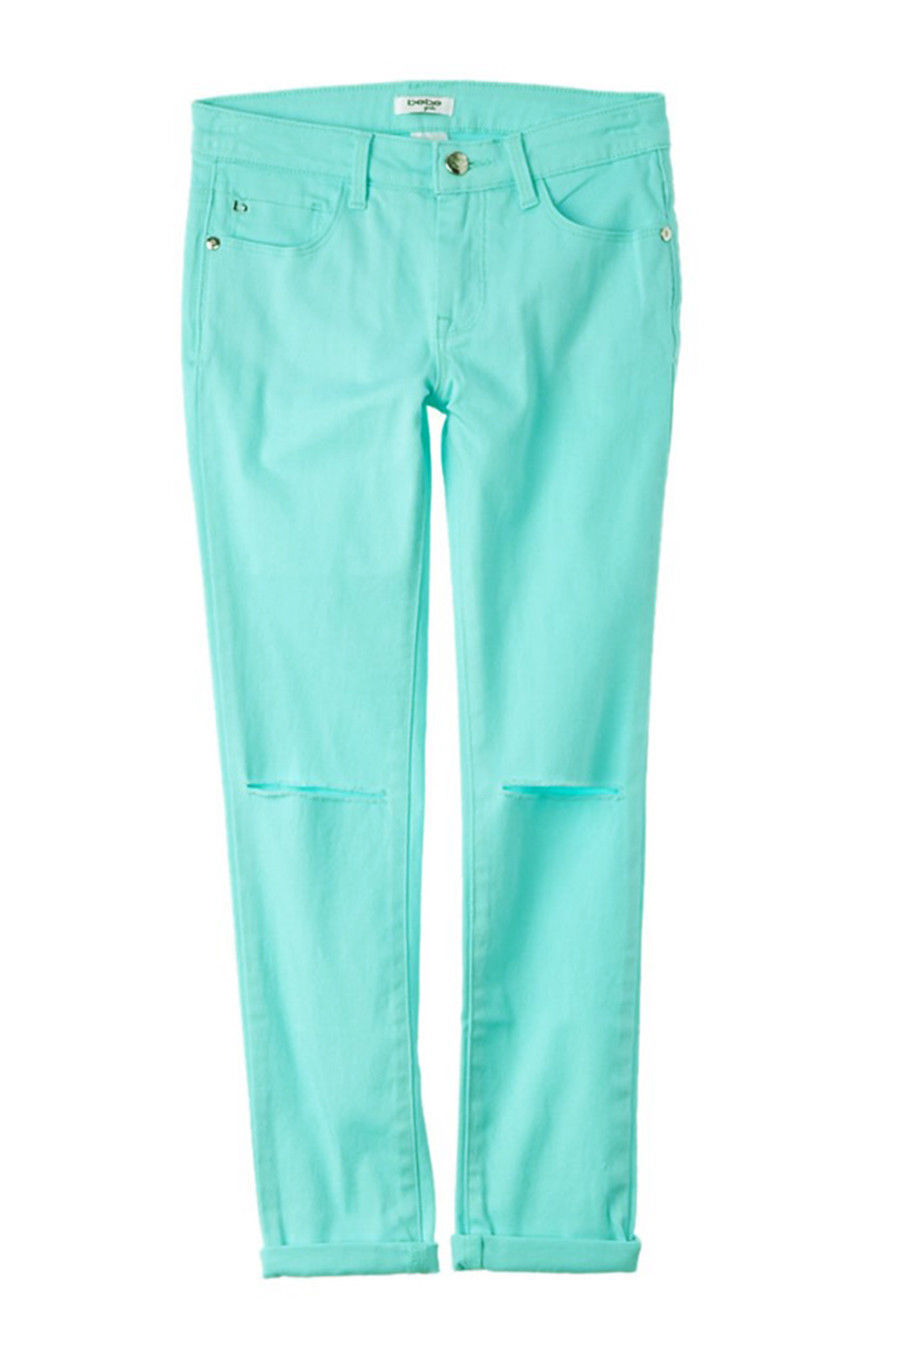 Primary image for NEW KIDS BEBE GIRLS ZIP FLY BLUE AQUA STRETCH DISTRESSED JEANS 7